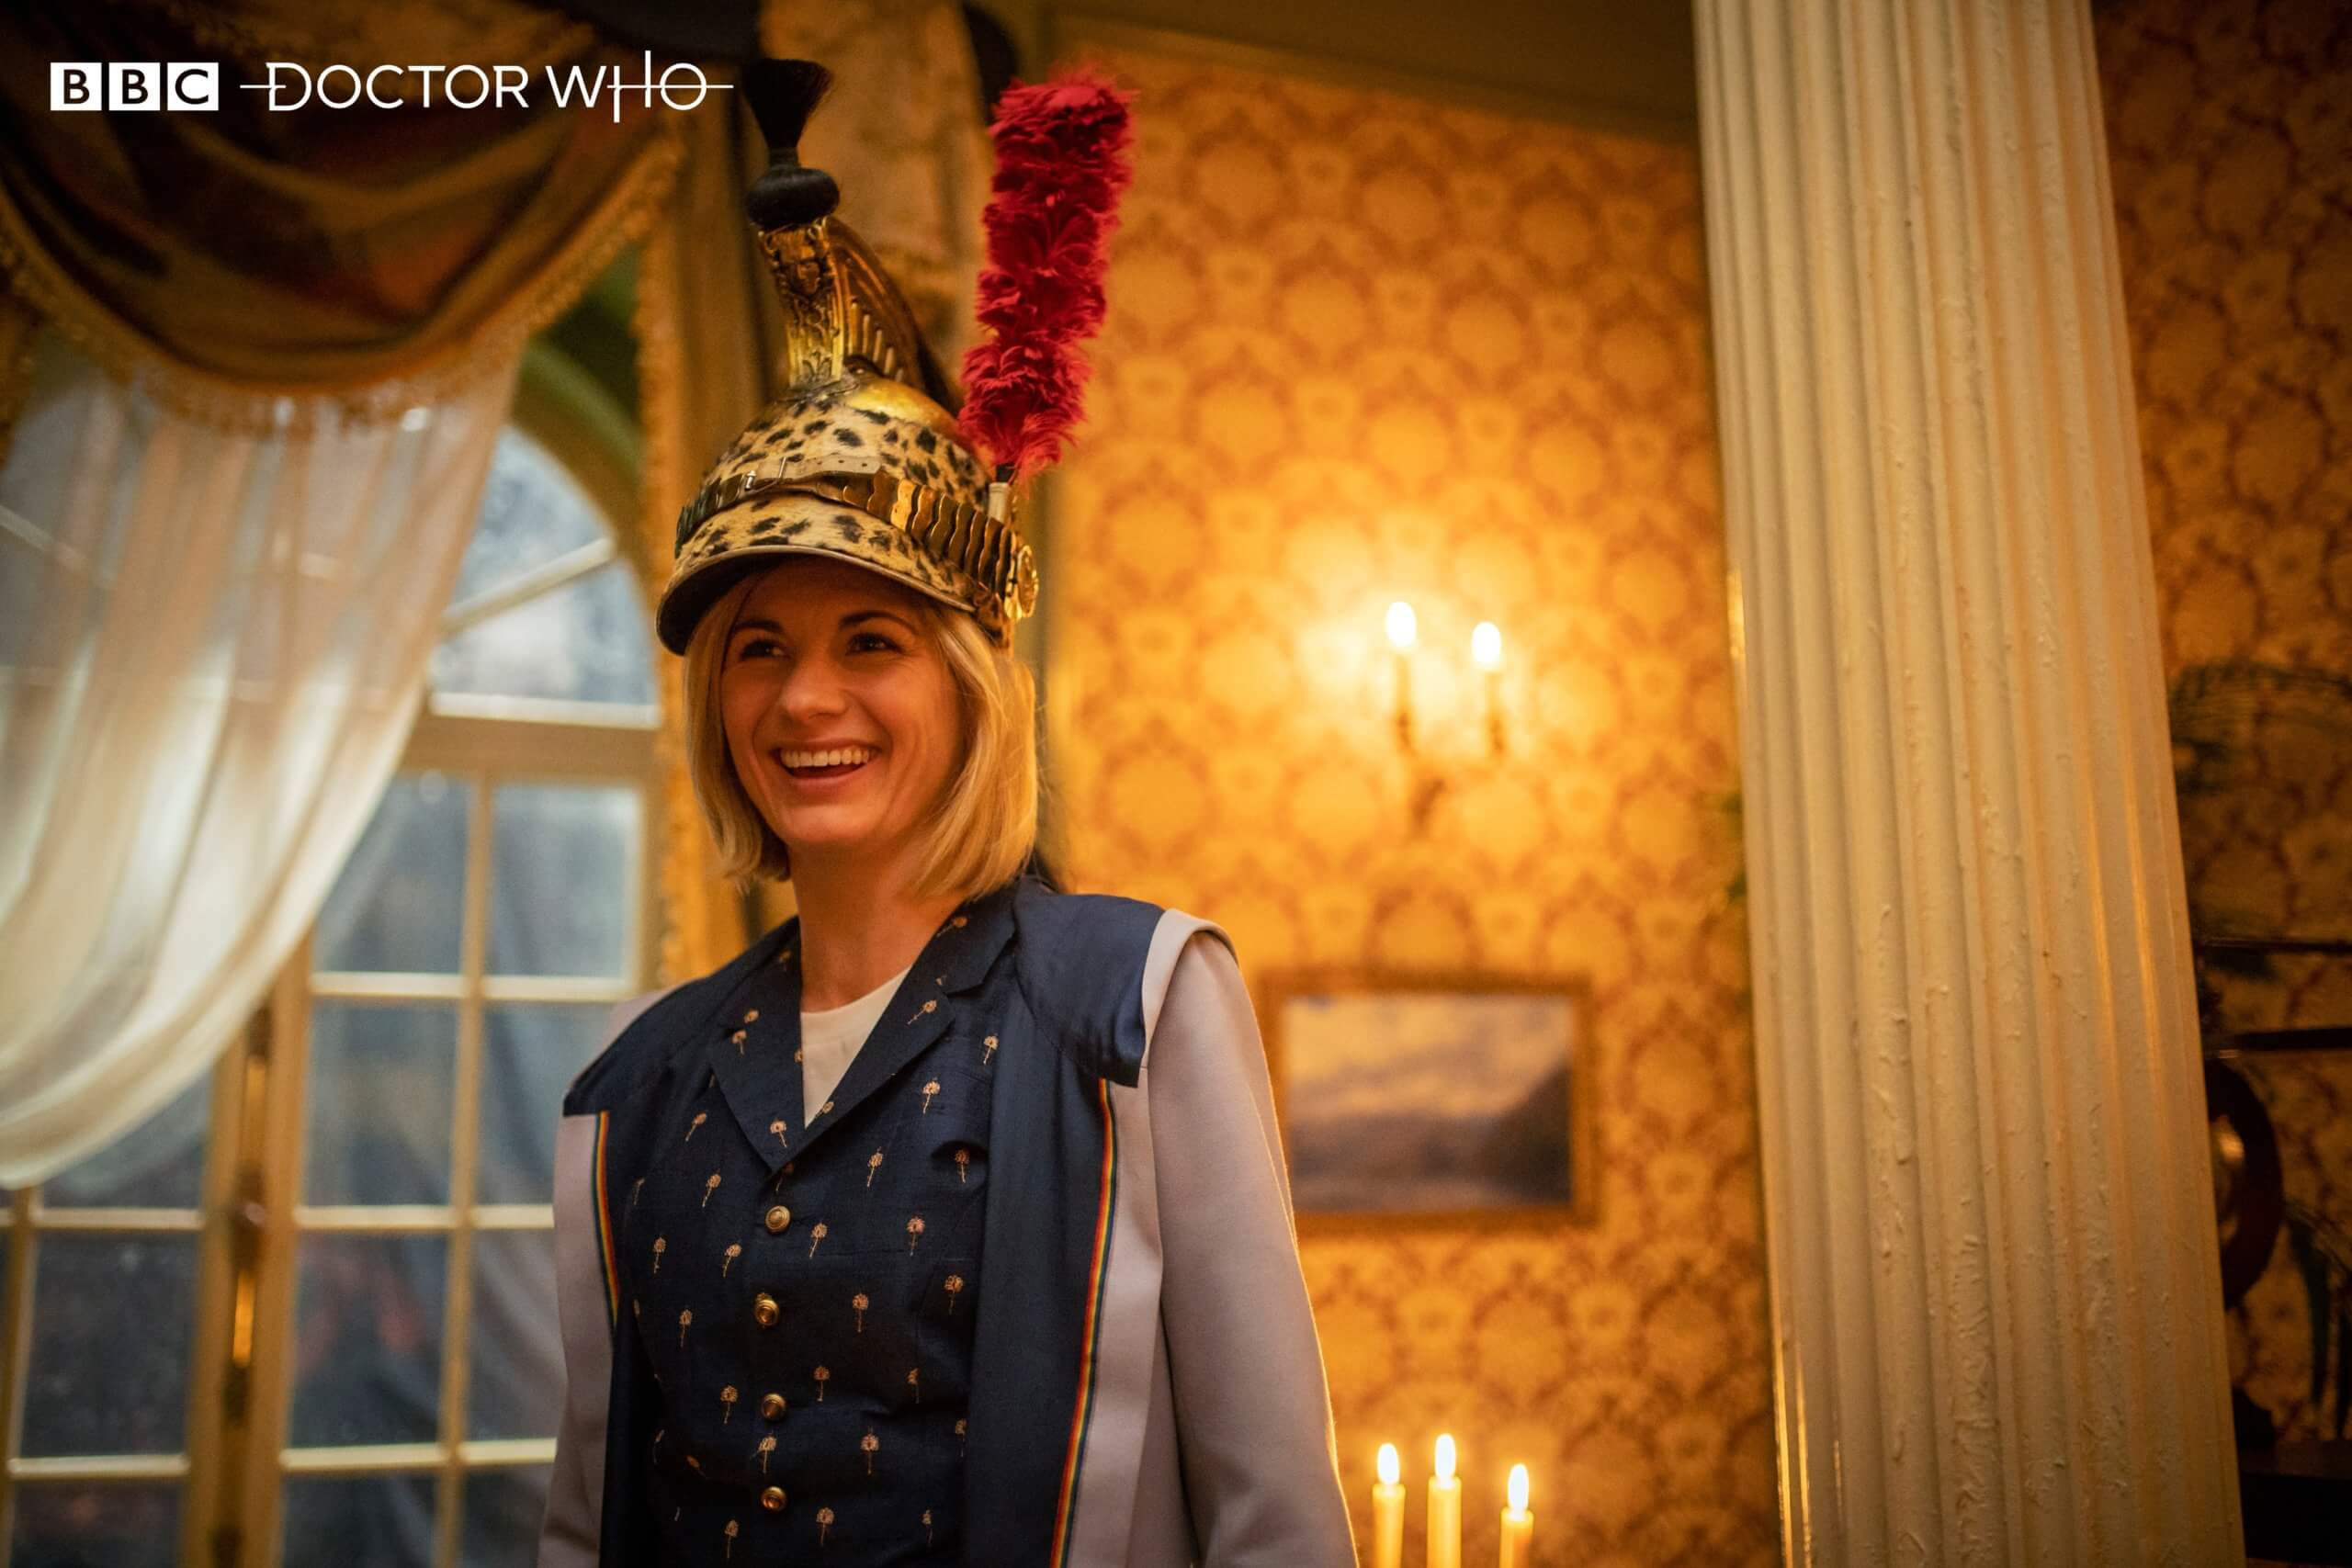 The Doctor wears a silly hat and smiles